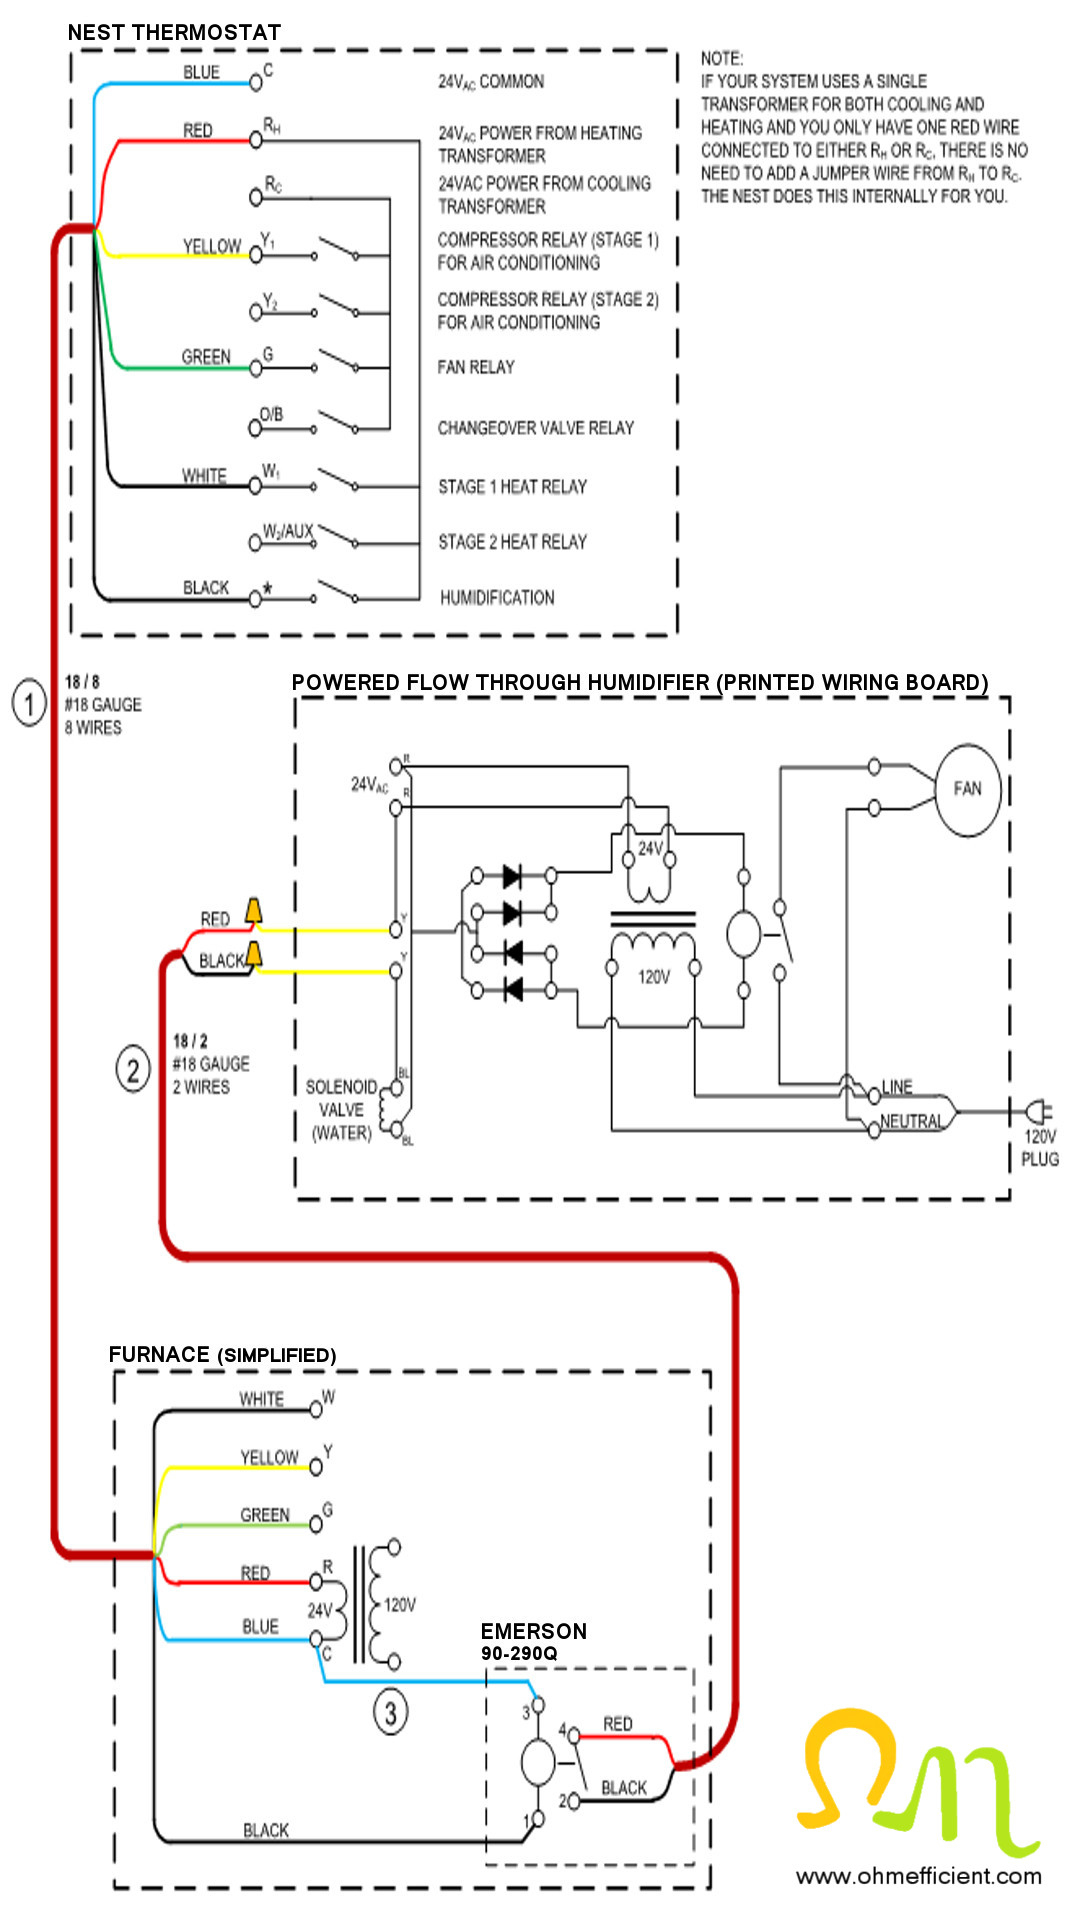 How To Connect & Setup A Nest Thermostat To Function As A Humidistat - Nest Thermostat Wiring Diagram For Cooling